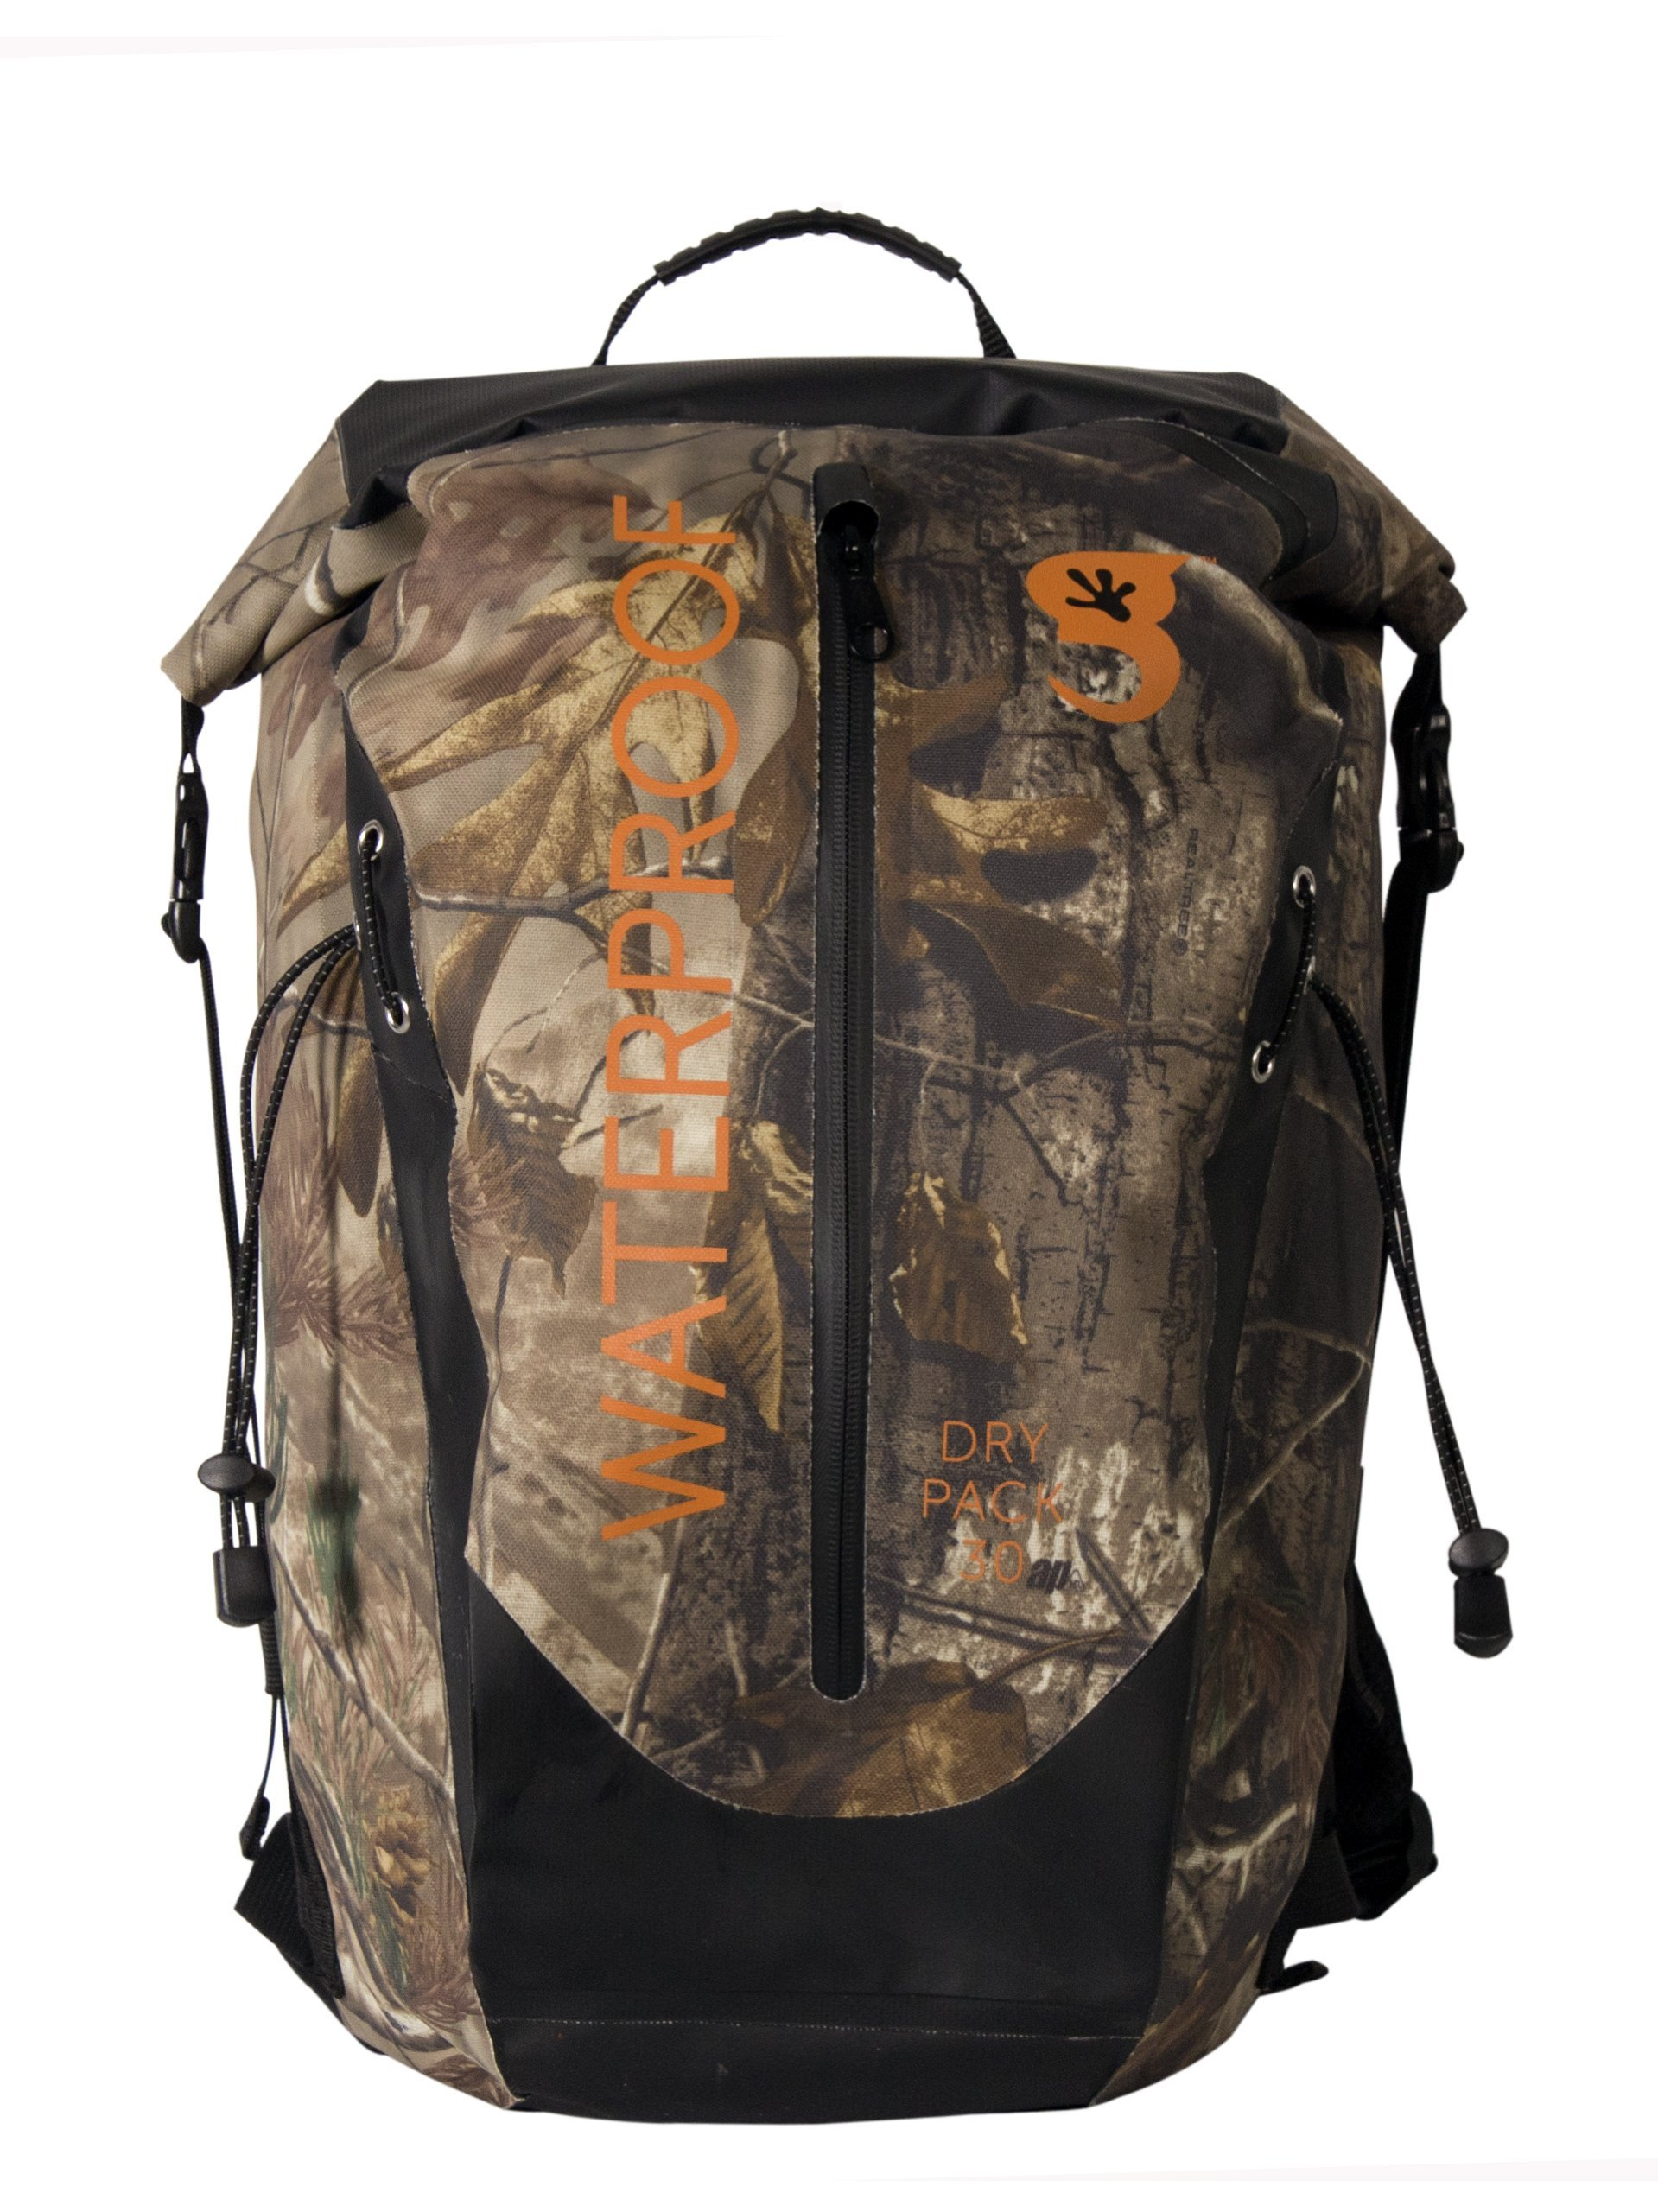 geckobrands Waterproof 30L Dry Bag Backpack, Realtree Xtra Camouflage